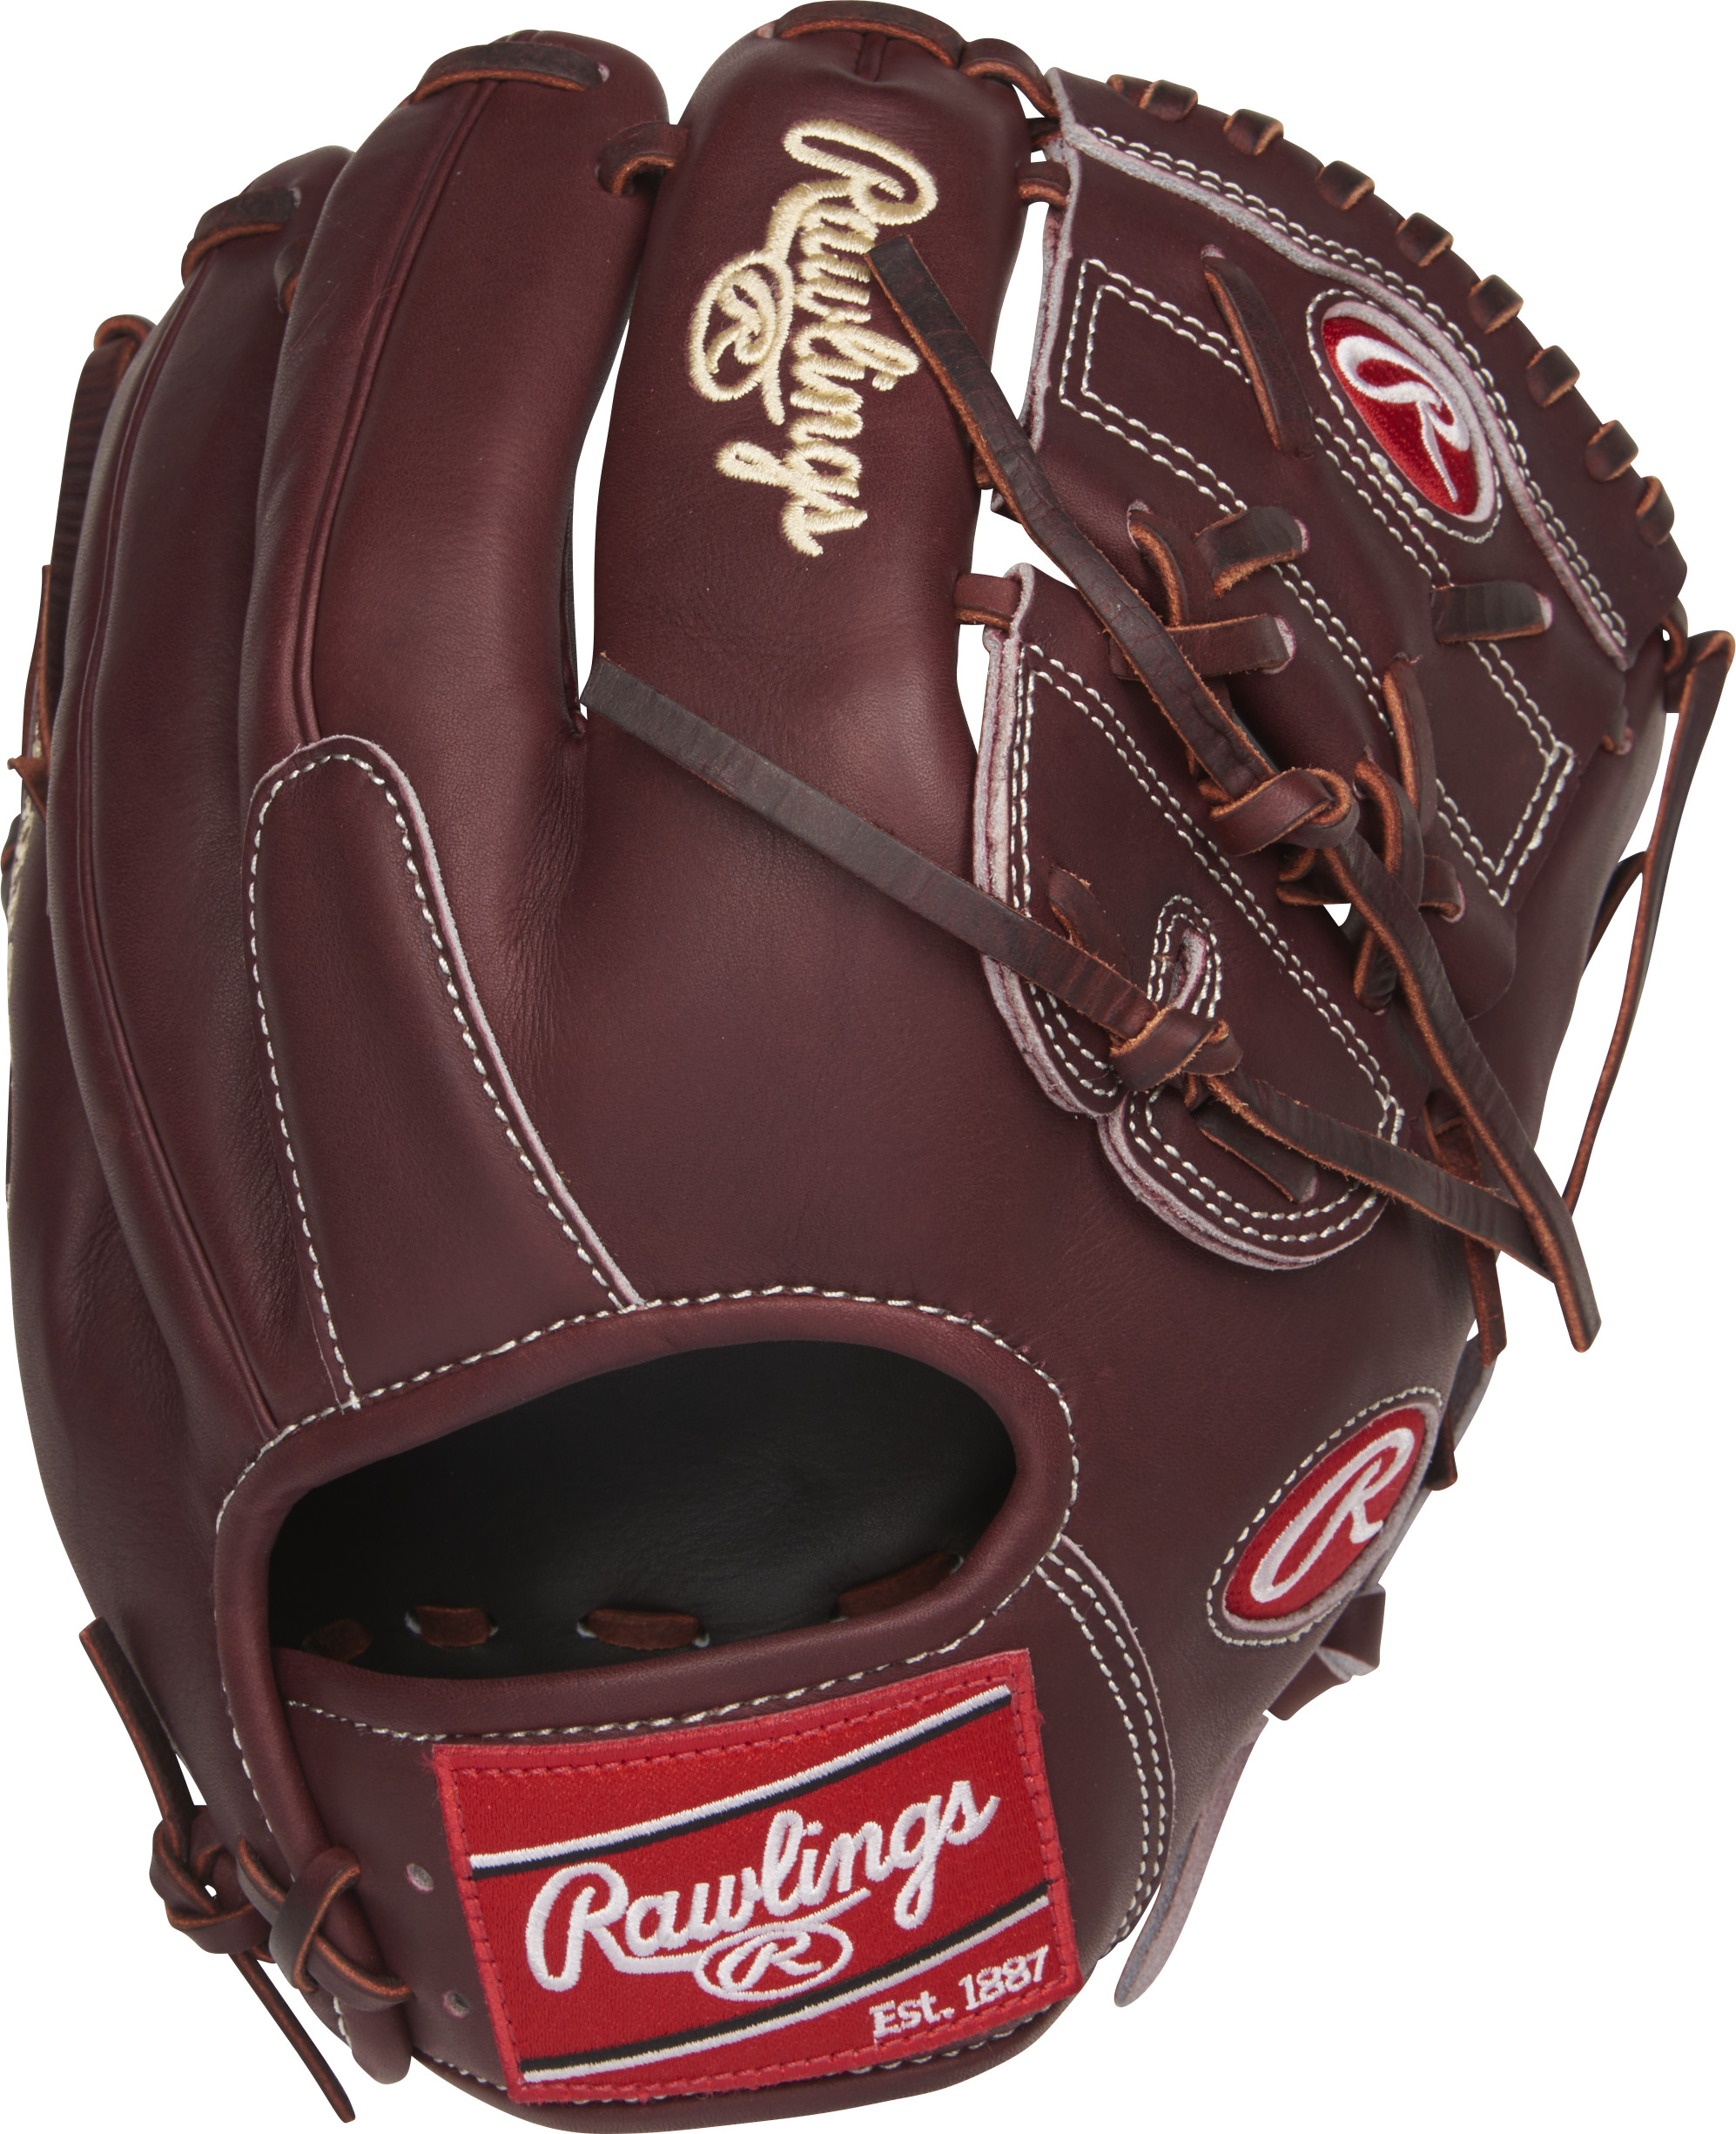 http://www.bestbatdeals.com/images/gloves/rawlings/PRO205-9SHFS-2.jpg